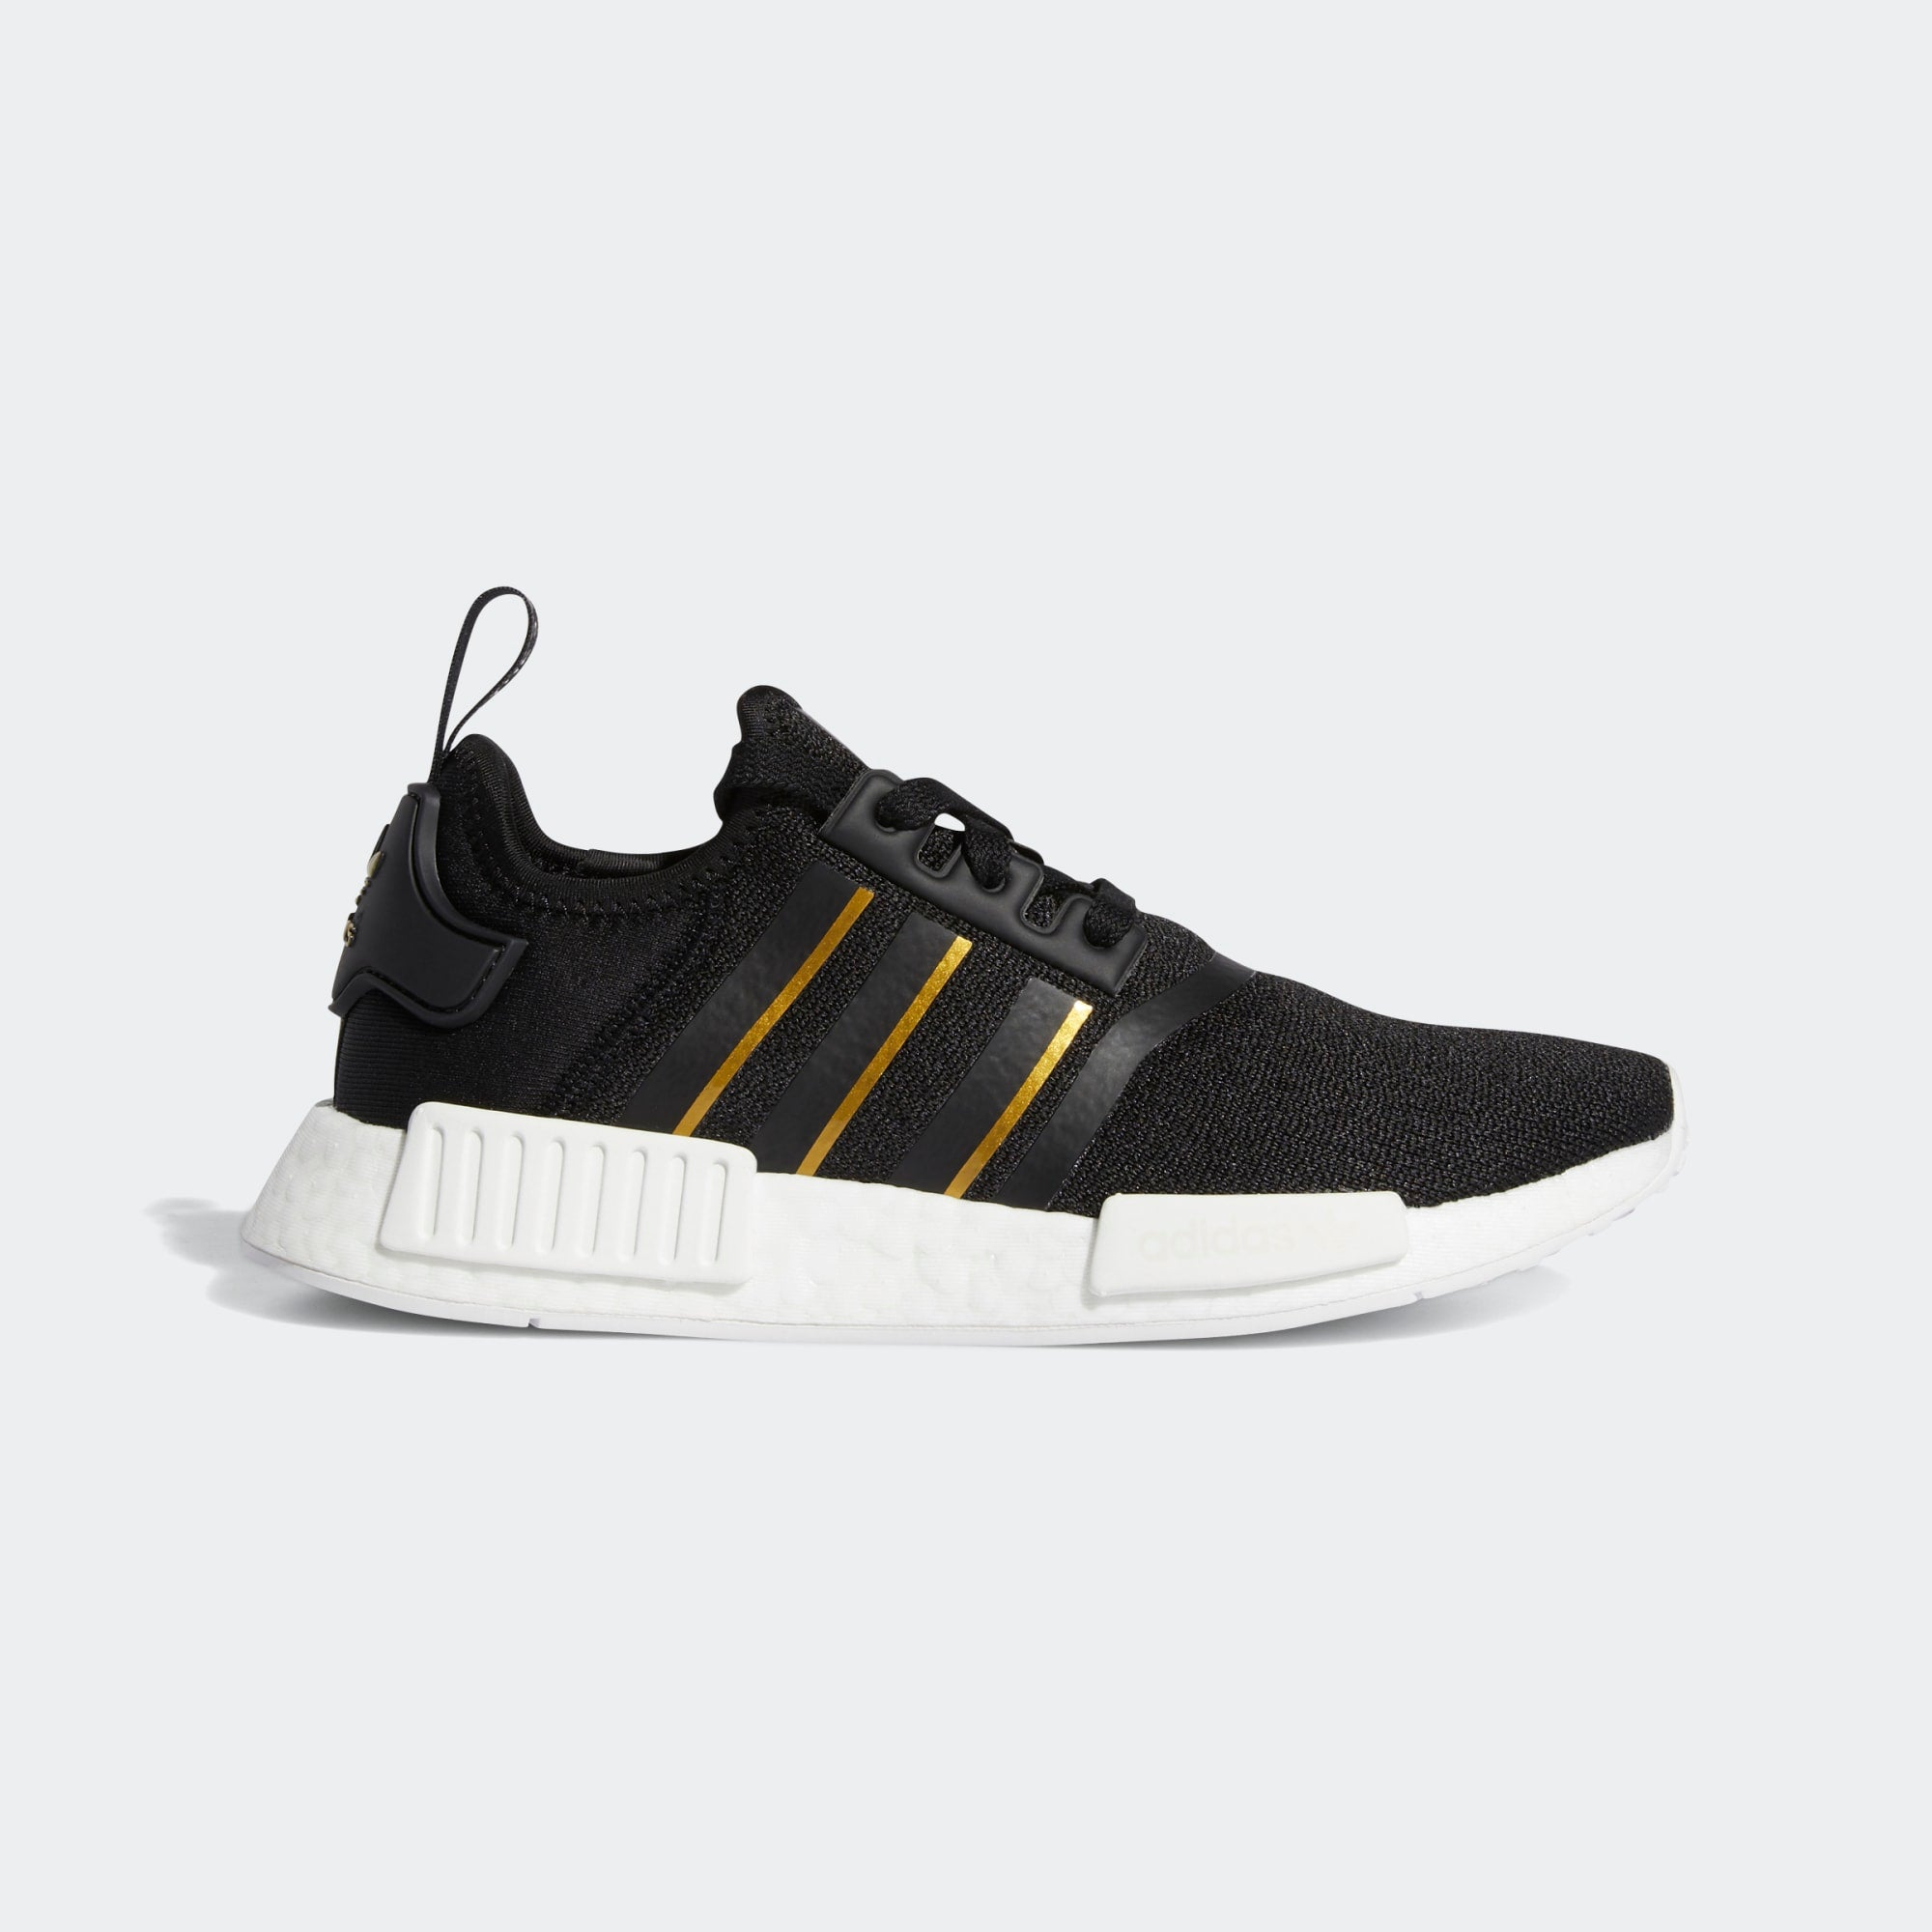 ADIDAS W'S FOOTWEAR NMD_R1 - CORE BLACK / METALLIC GOLD